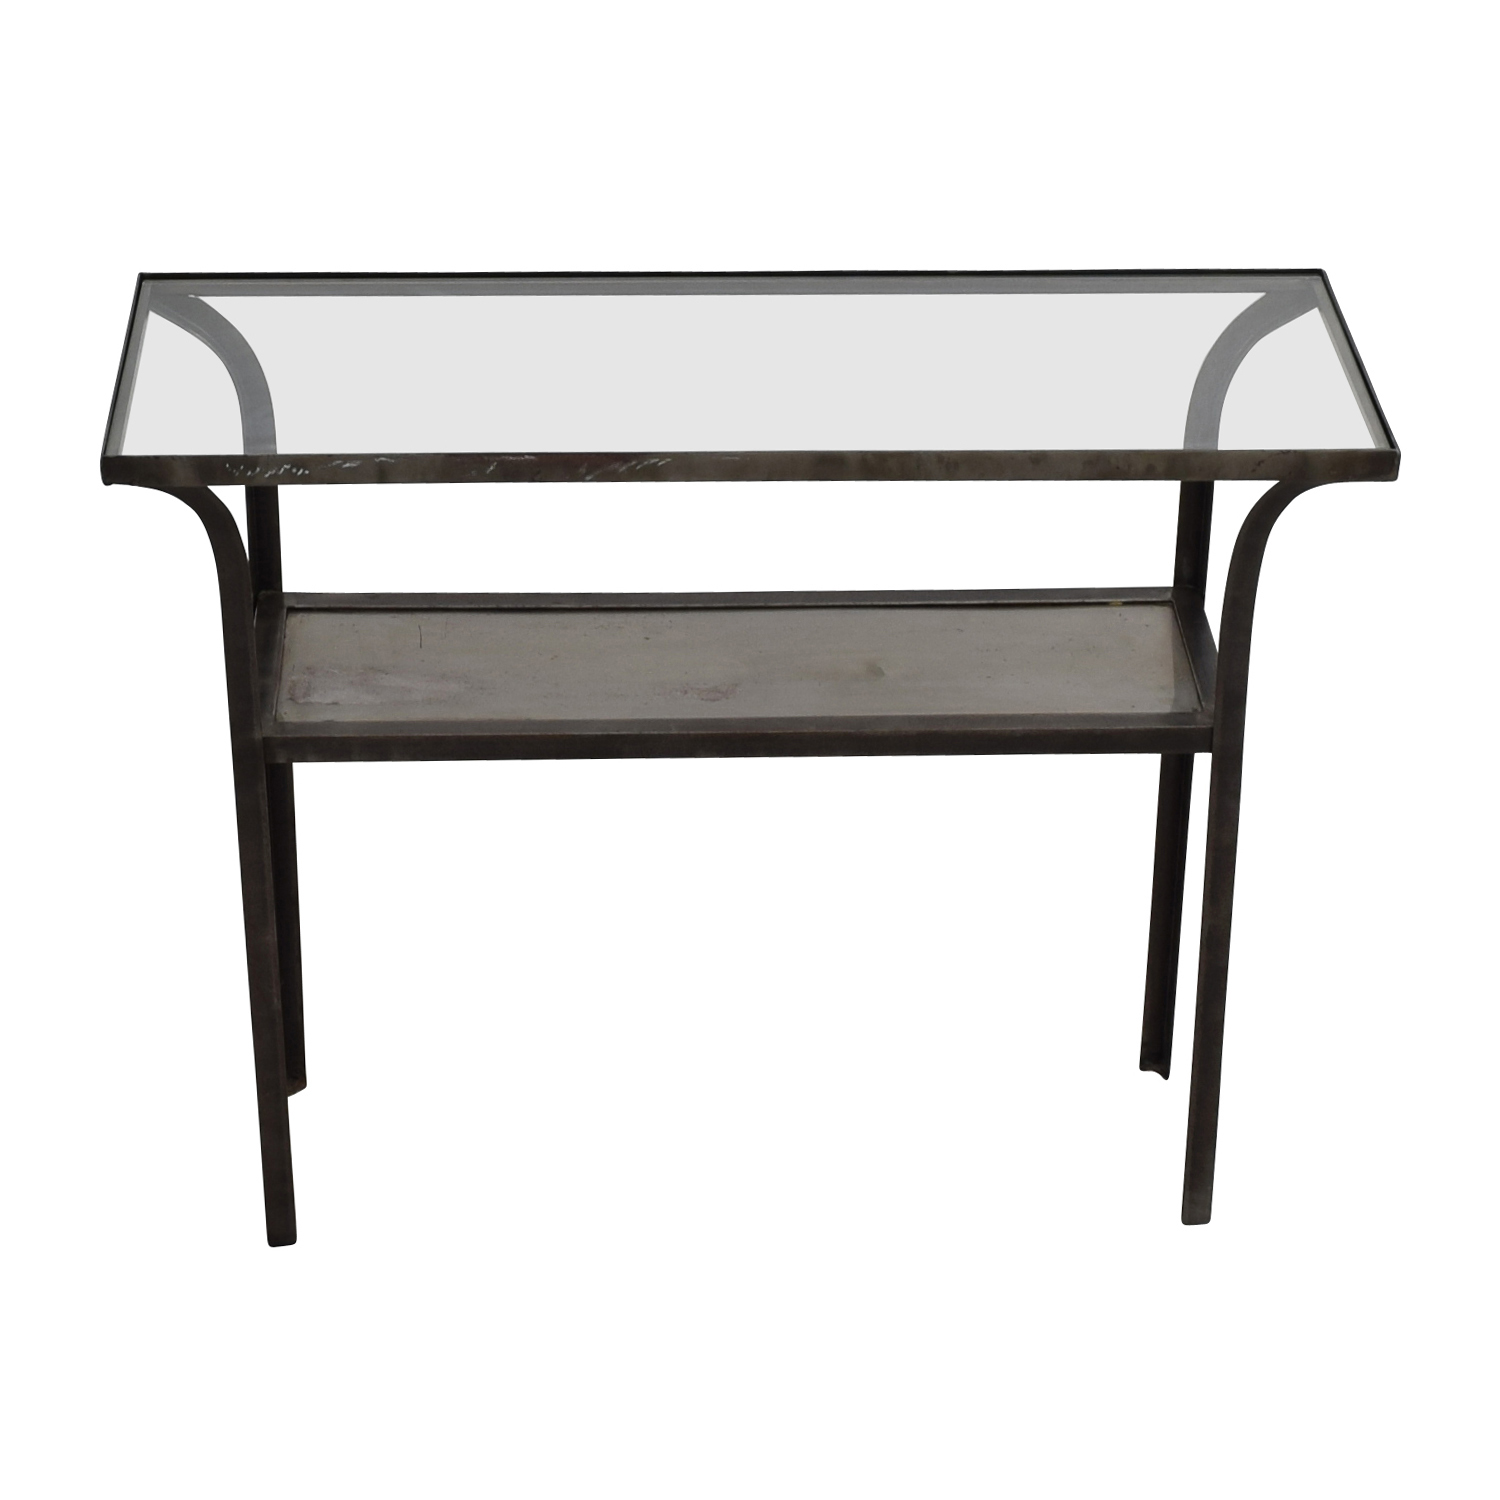 shop Crate & Barrel Crate & Barrel Metal and Glass Console Table online